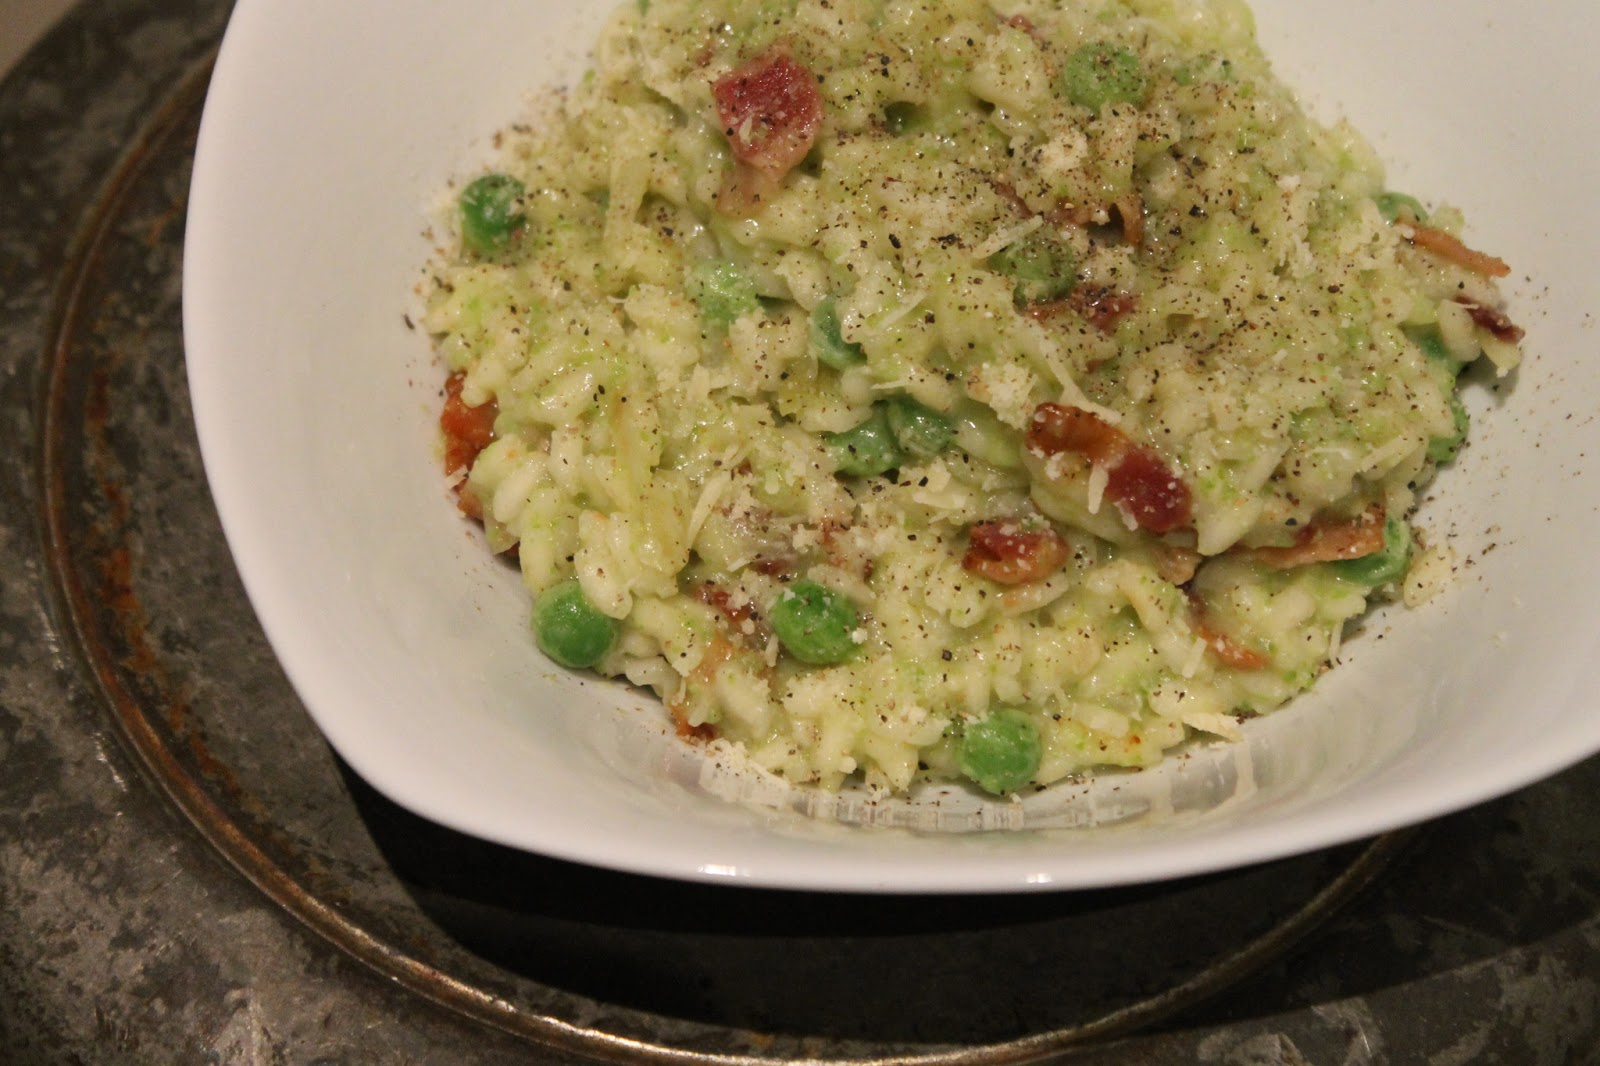 Cookin' & Craftin': Pea and Bacon Risotto